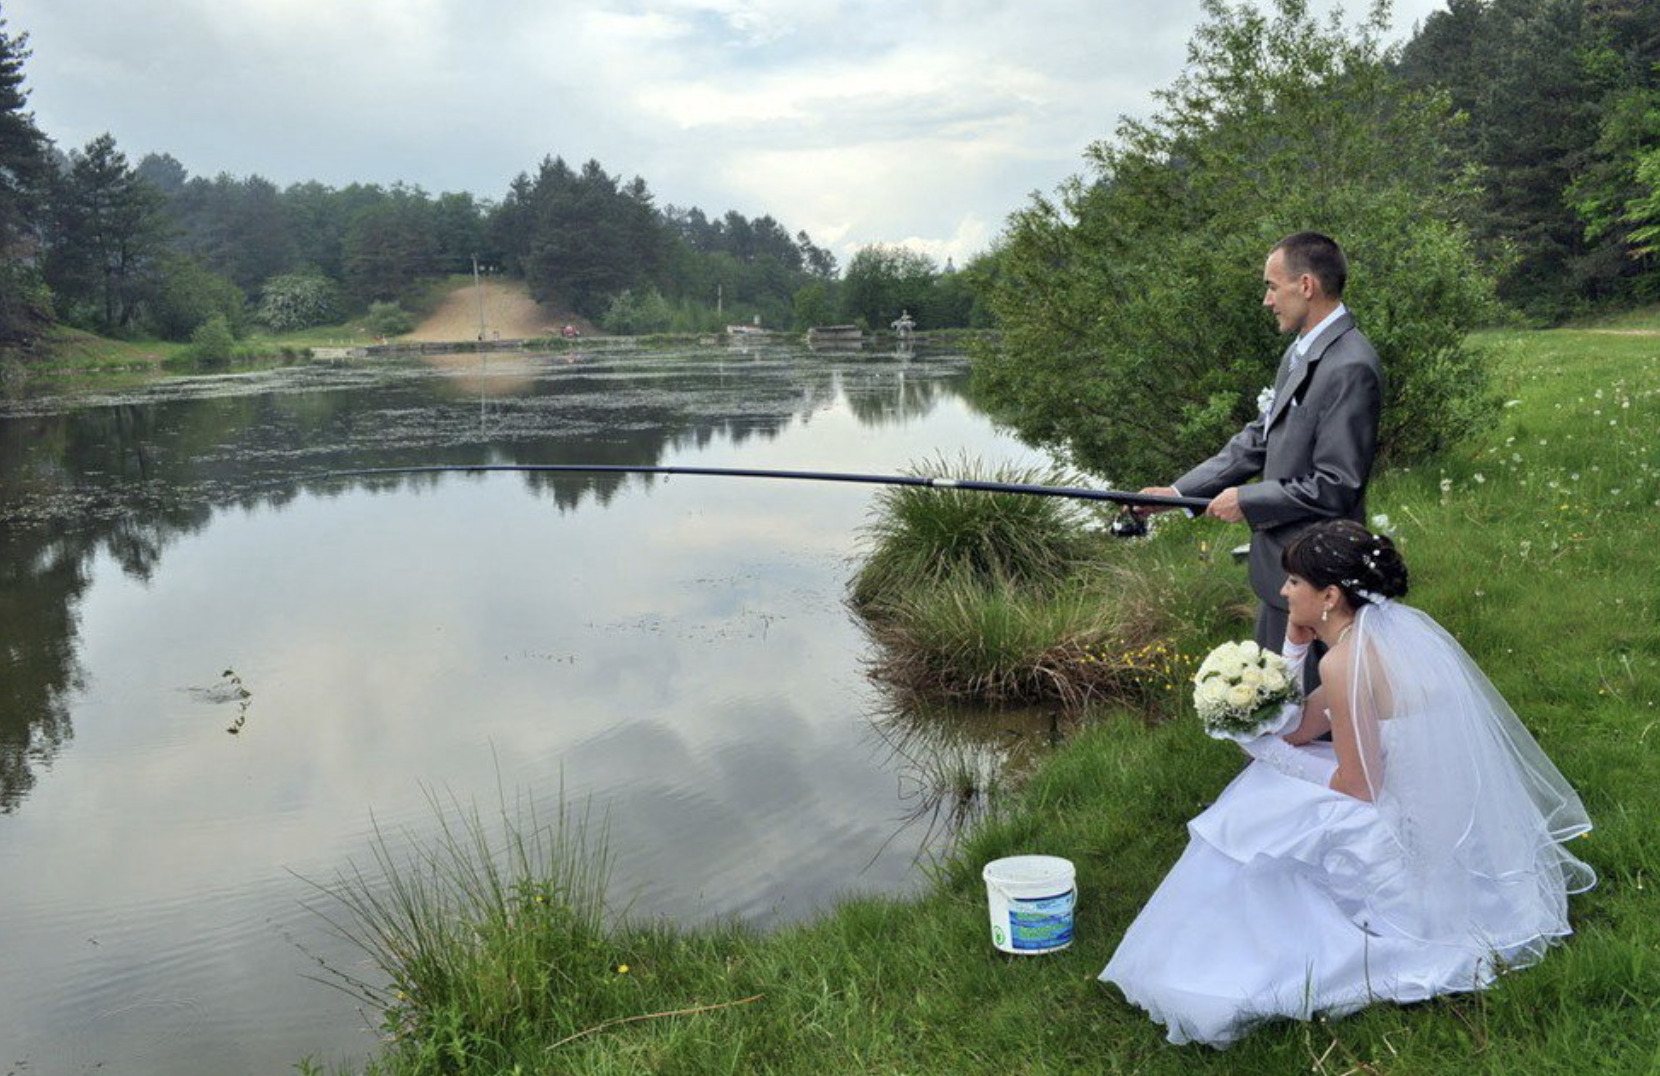 bride and groom fishing, funny fishing pictures